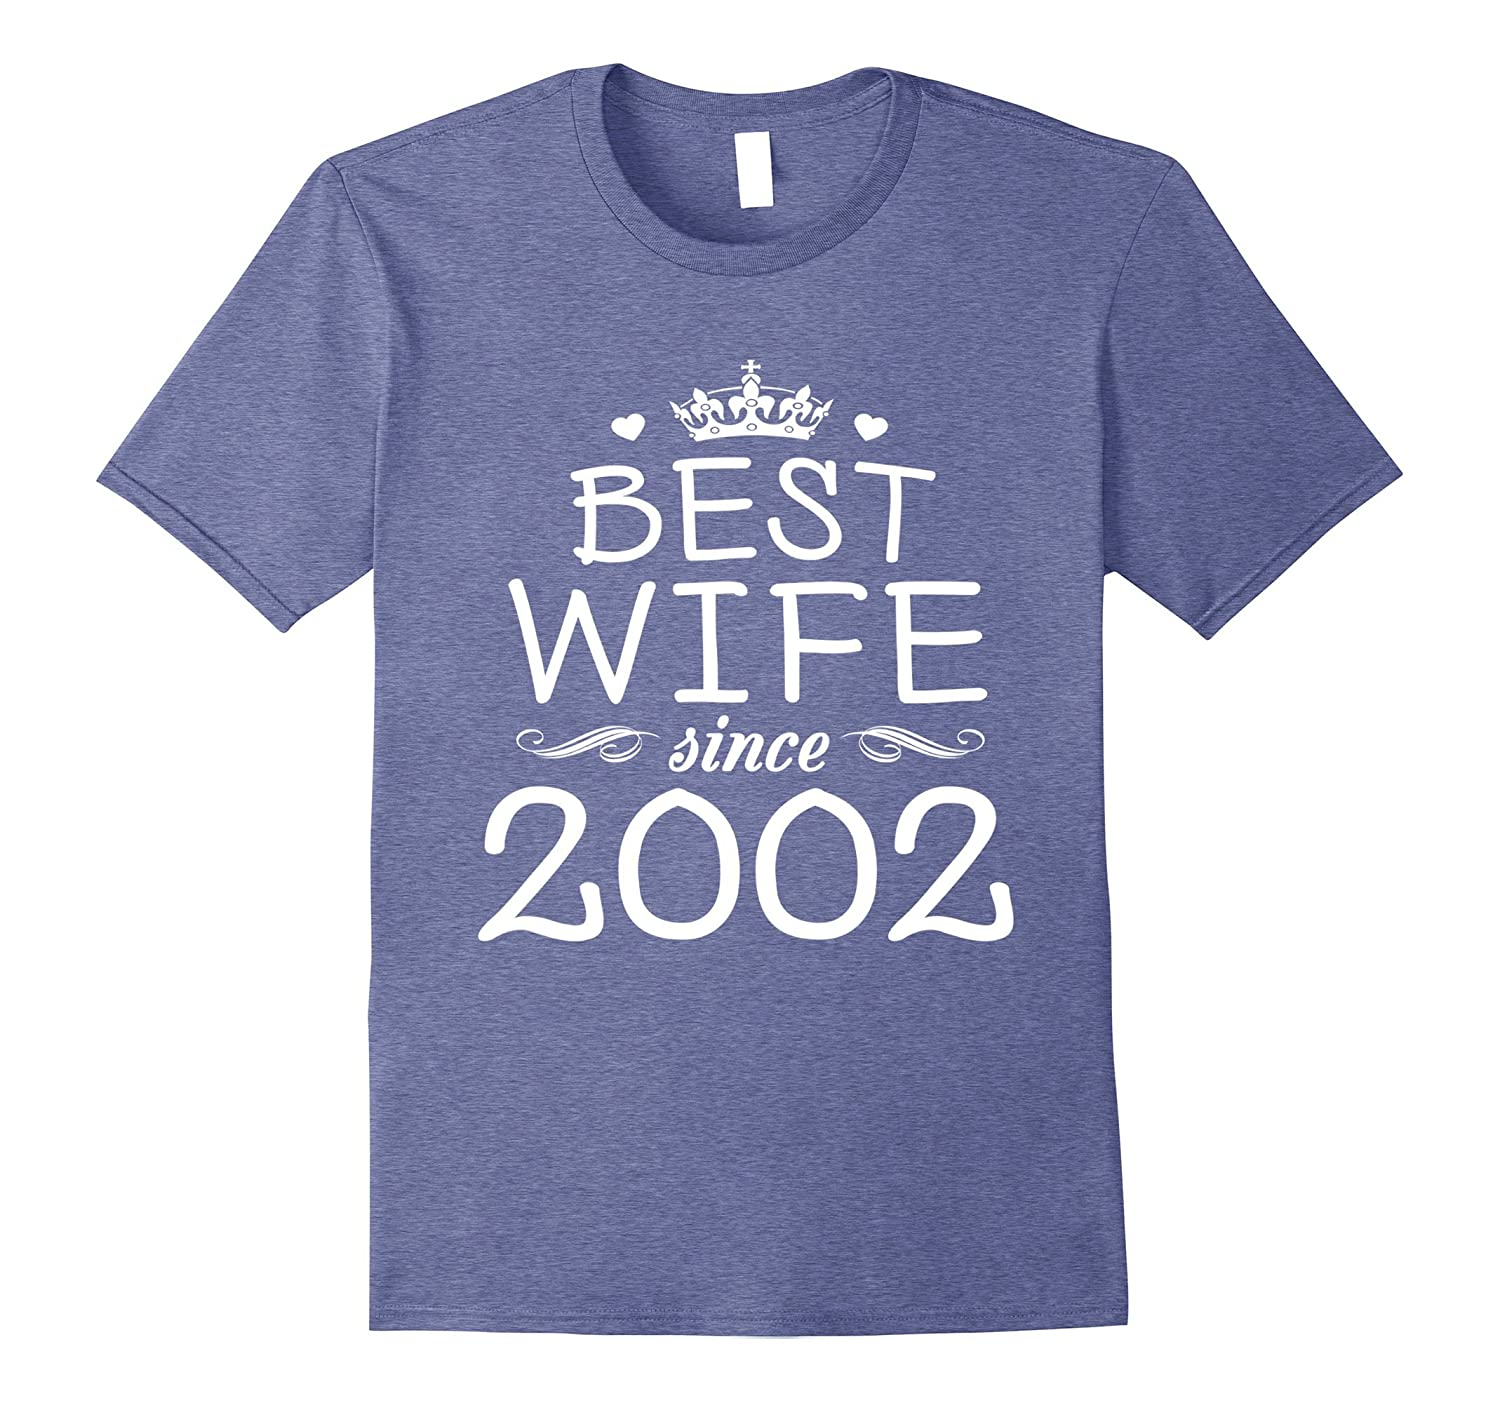 15th Wedding Anniversary Party Ideas: 15th Wedding Anniversary Gift Ideas For Her-Wife Since